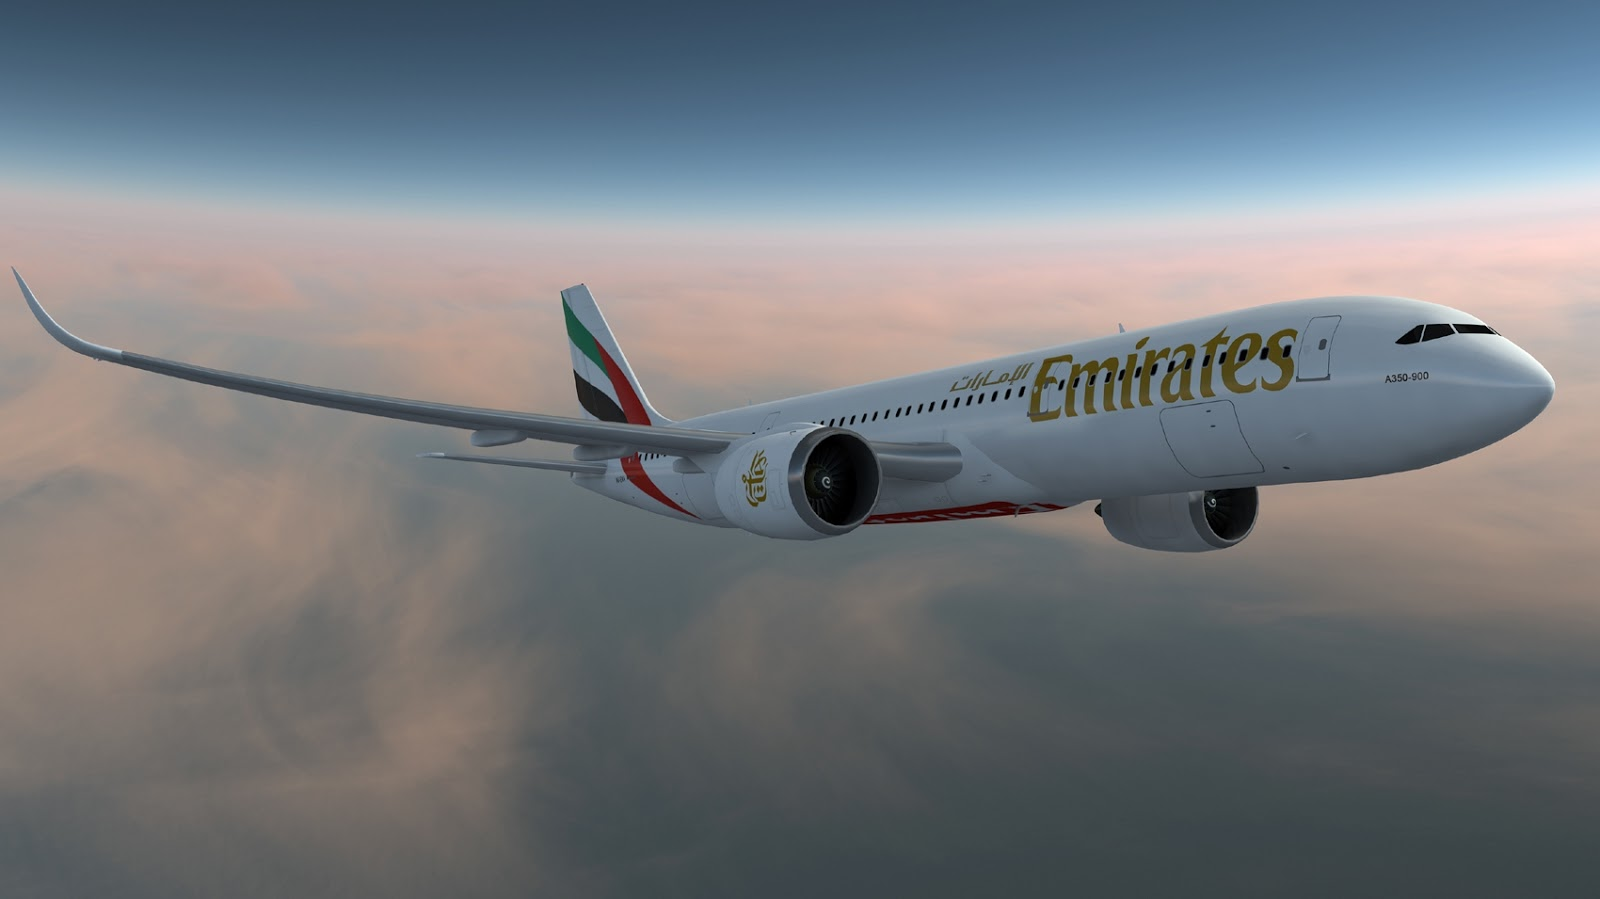 Airbus A350 900 Rendering Image of Emirates Airlines Aircraft 1600x899